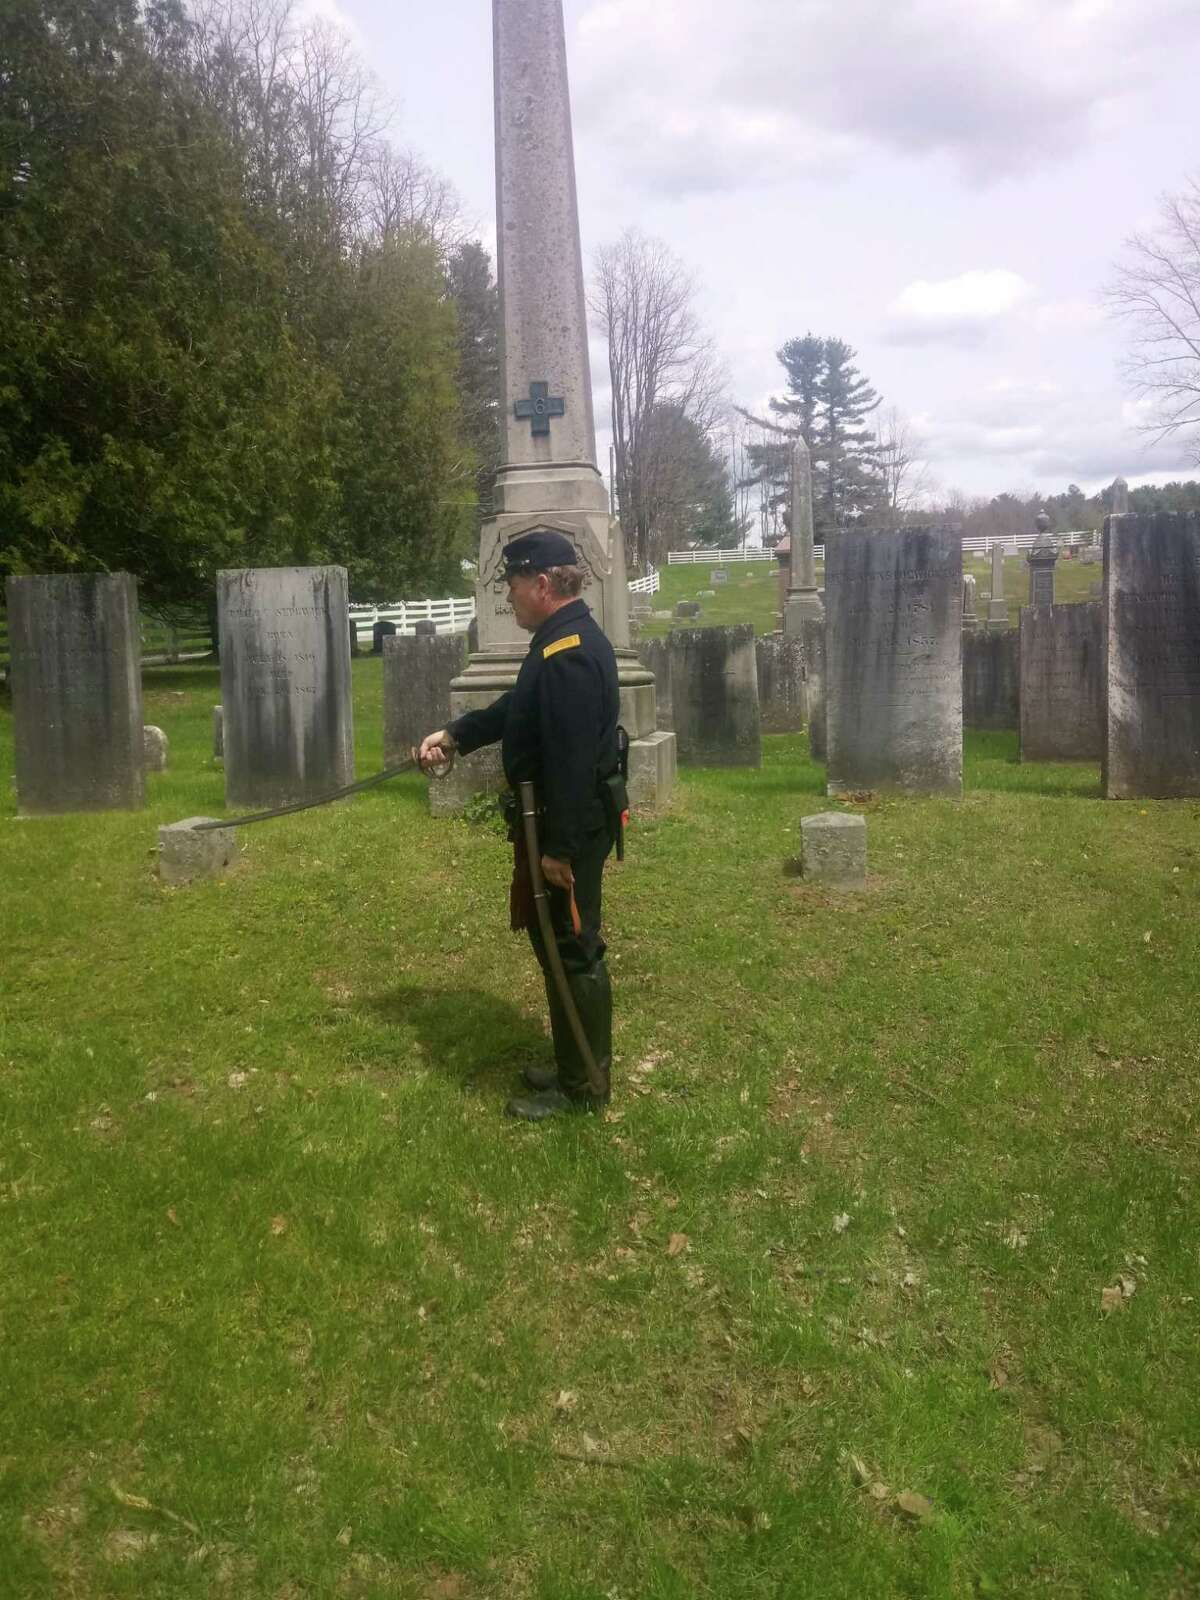 Civil War reenactor Kevin Titus honored U.S. Army Major John Sedgwick Sunday. Sedgwick, who served in the Union Army and was killed in action in 1864 in Spotsylvania, VA, is buried at Old Cornwall Hollow Cemetery. Above, Titus in uniform at the grave.